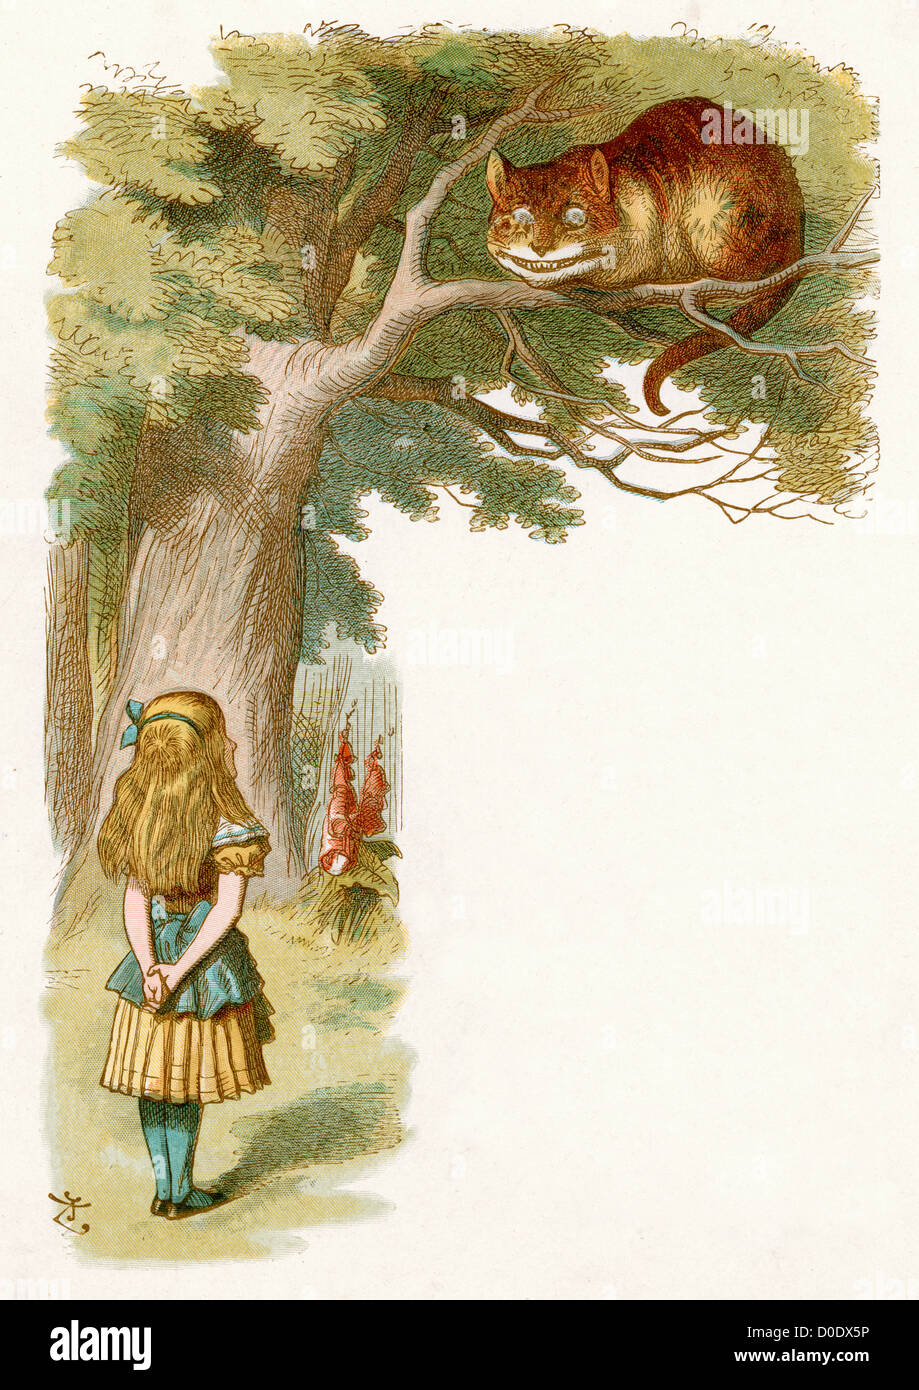 The Cheshire Cat, from the Lewis Carroll Story Alice in Wonderland, Illustration by Sir John Tenniel 1871 - Stock Image